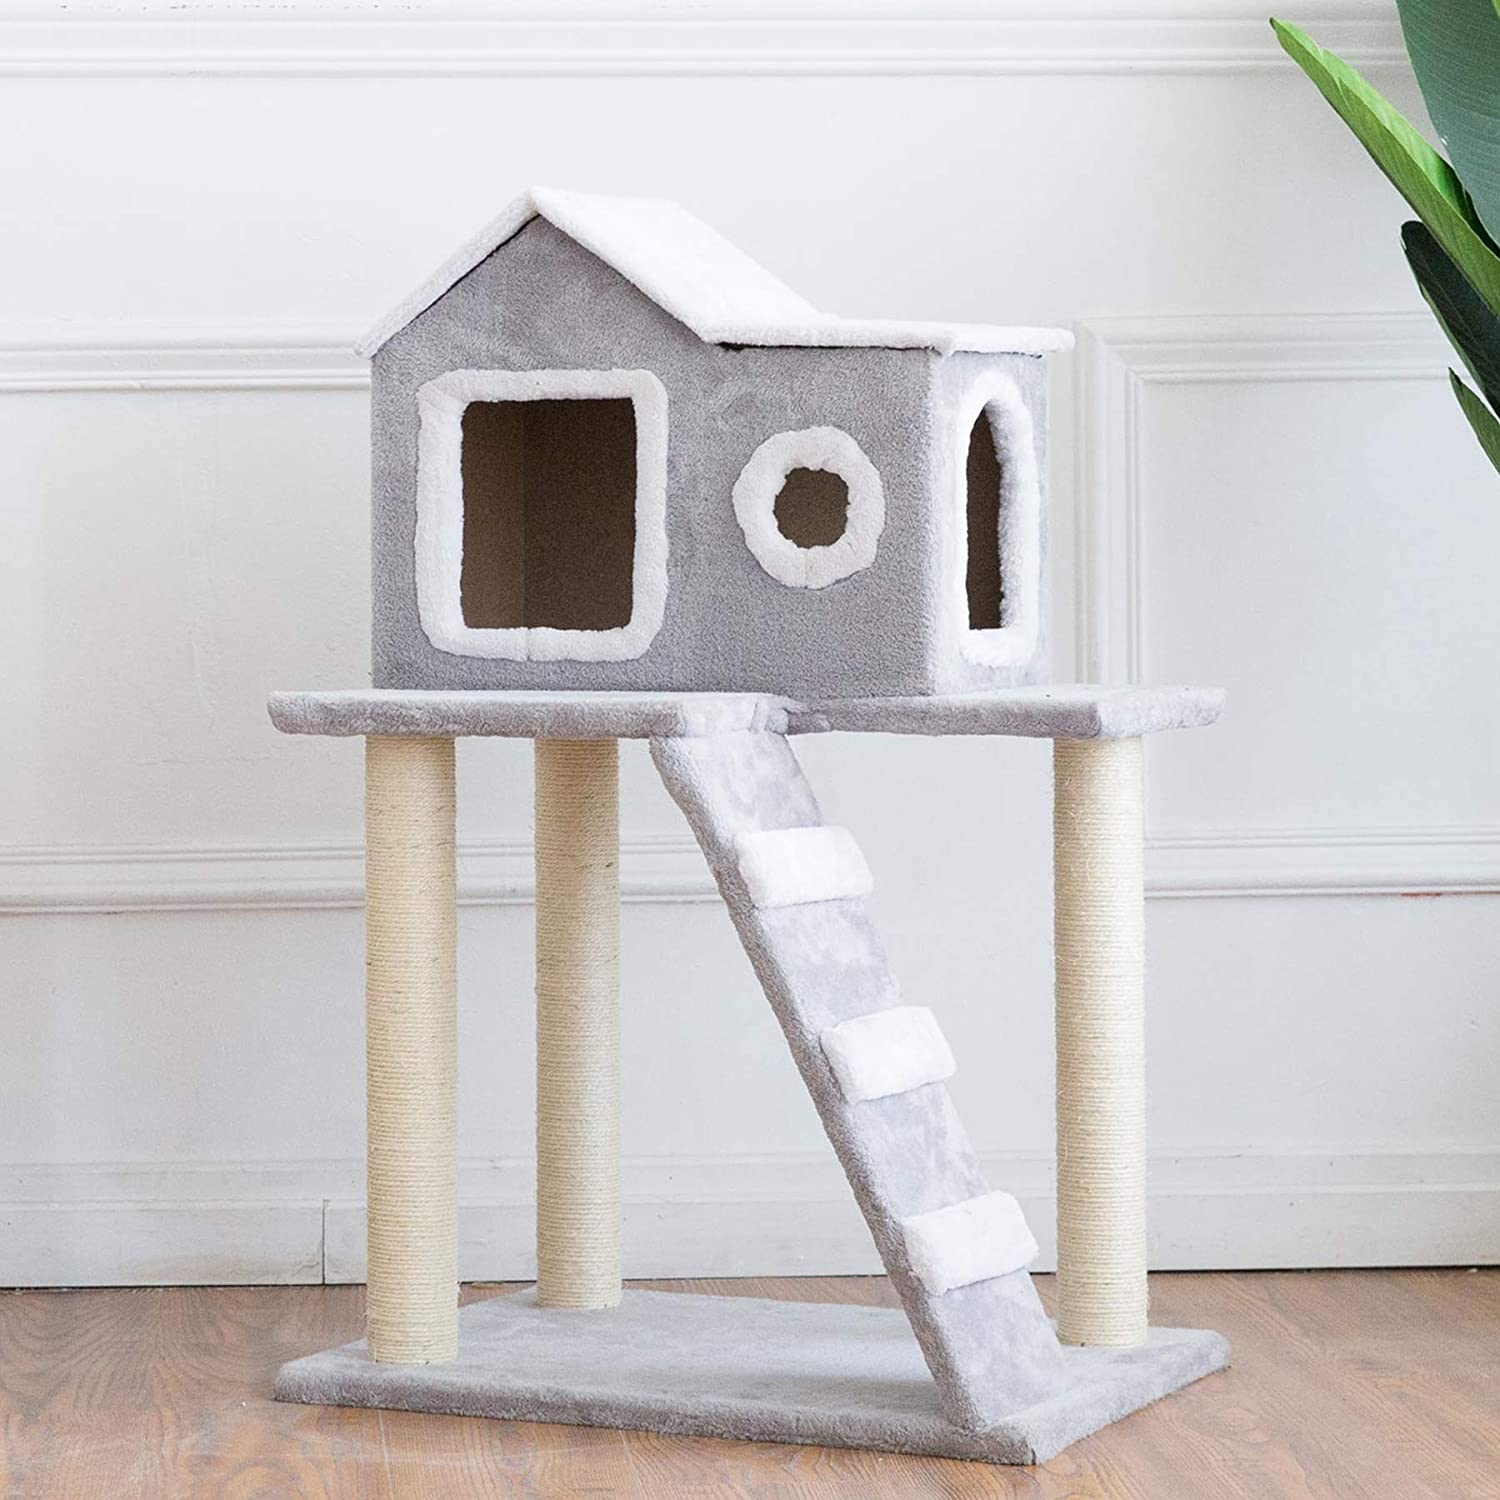 Scratching Post /& Dangling Toy Combined with Cat Bed CO-Z 4 in 1 Multi-Functional Cat Tree Condo Furniture Cat Climber Super Stable Cat Tower House Peek Holes